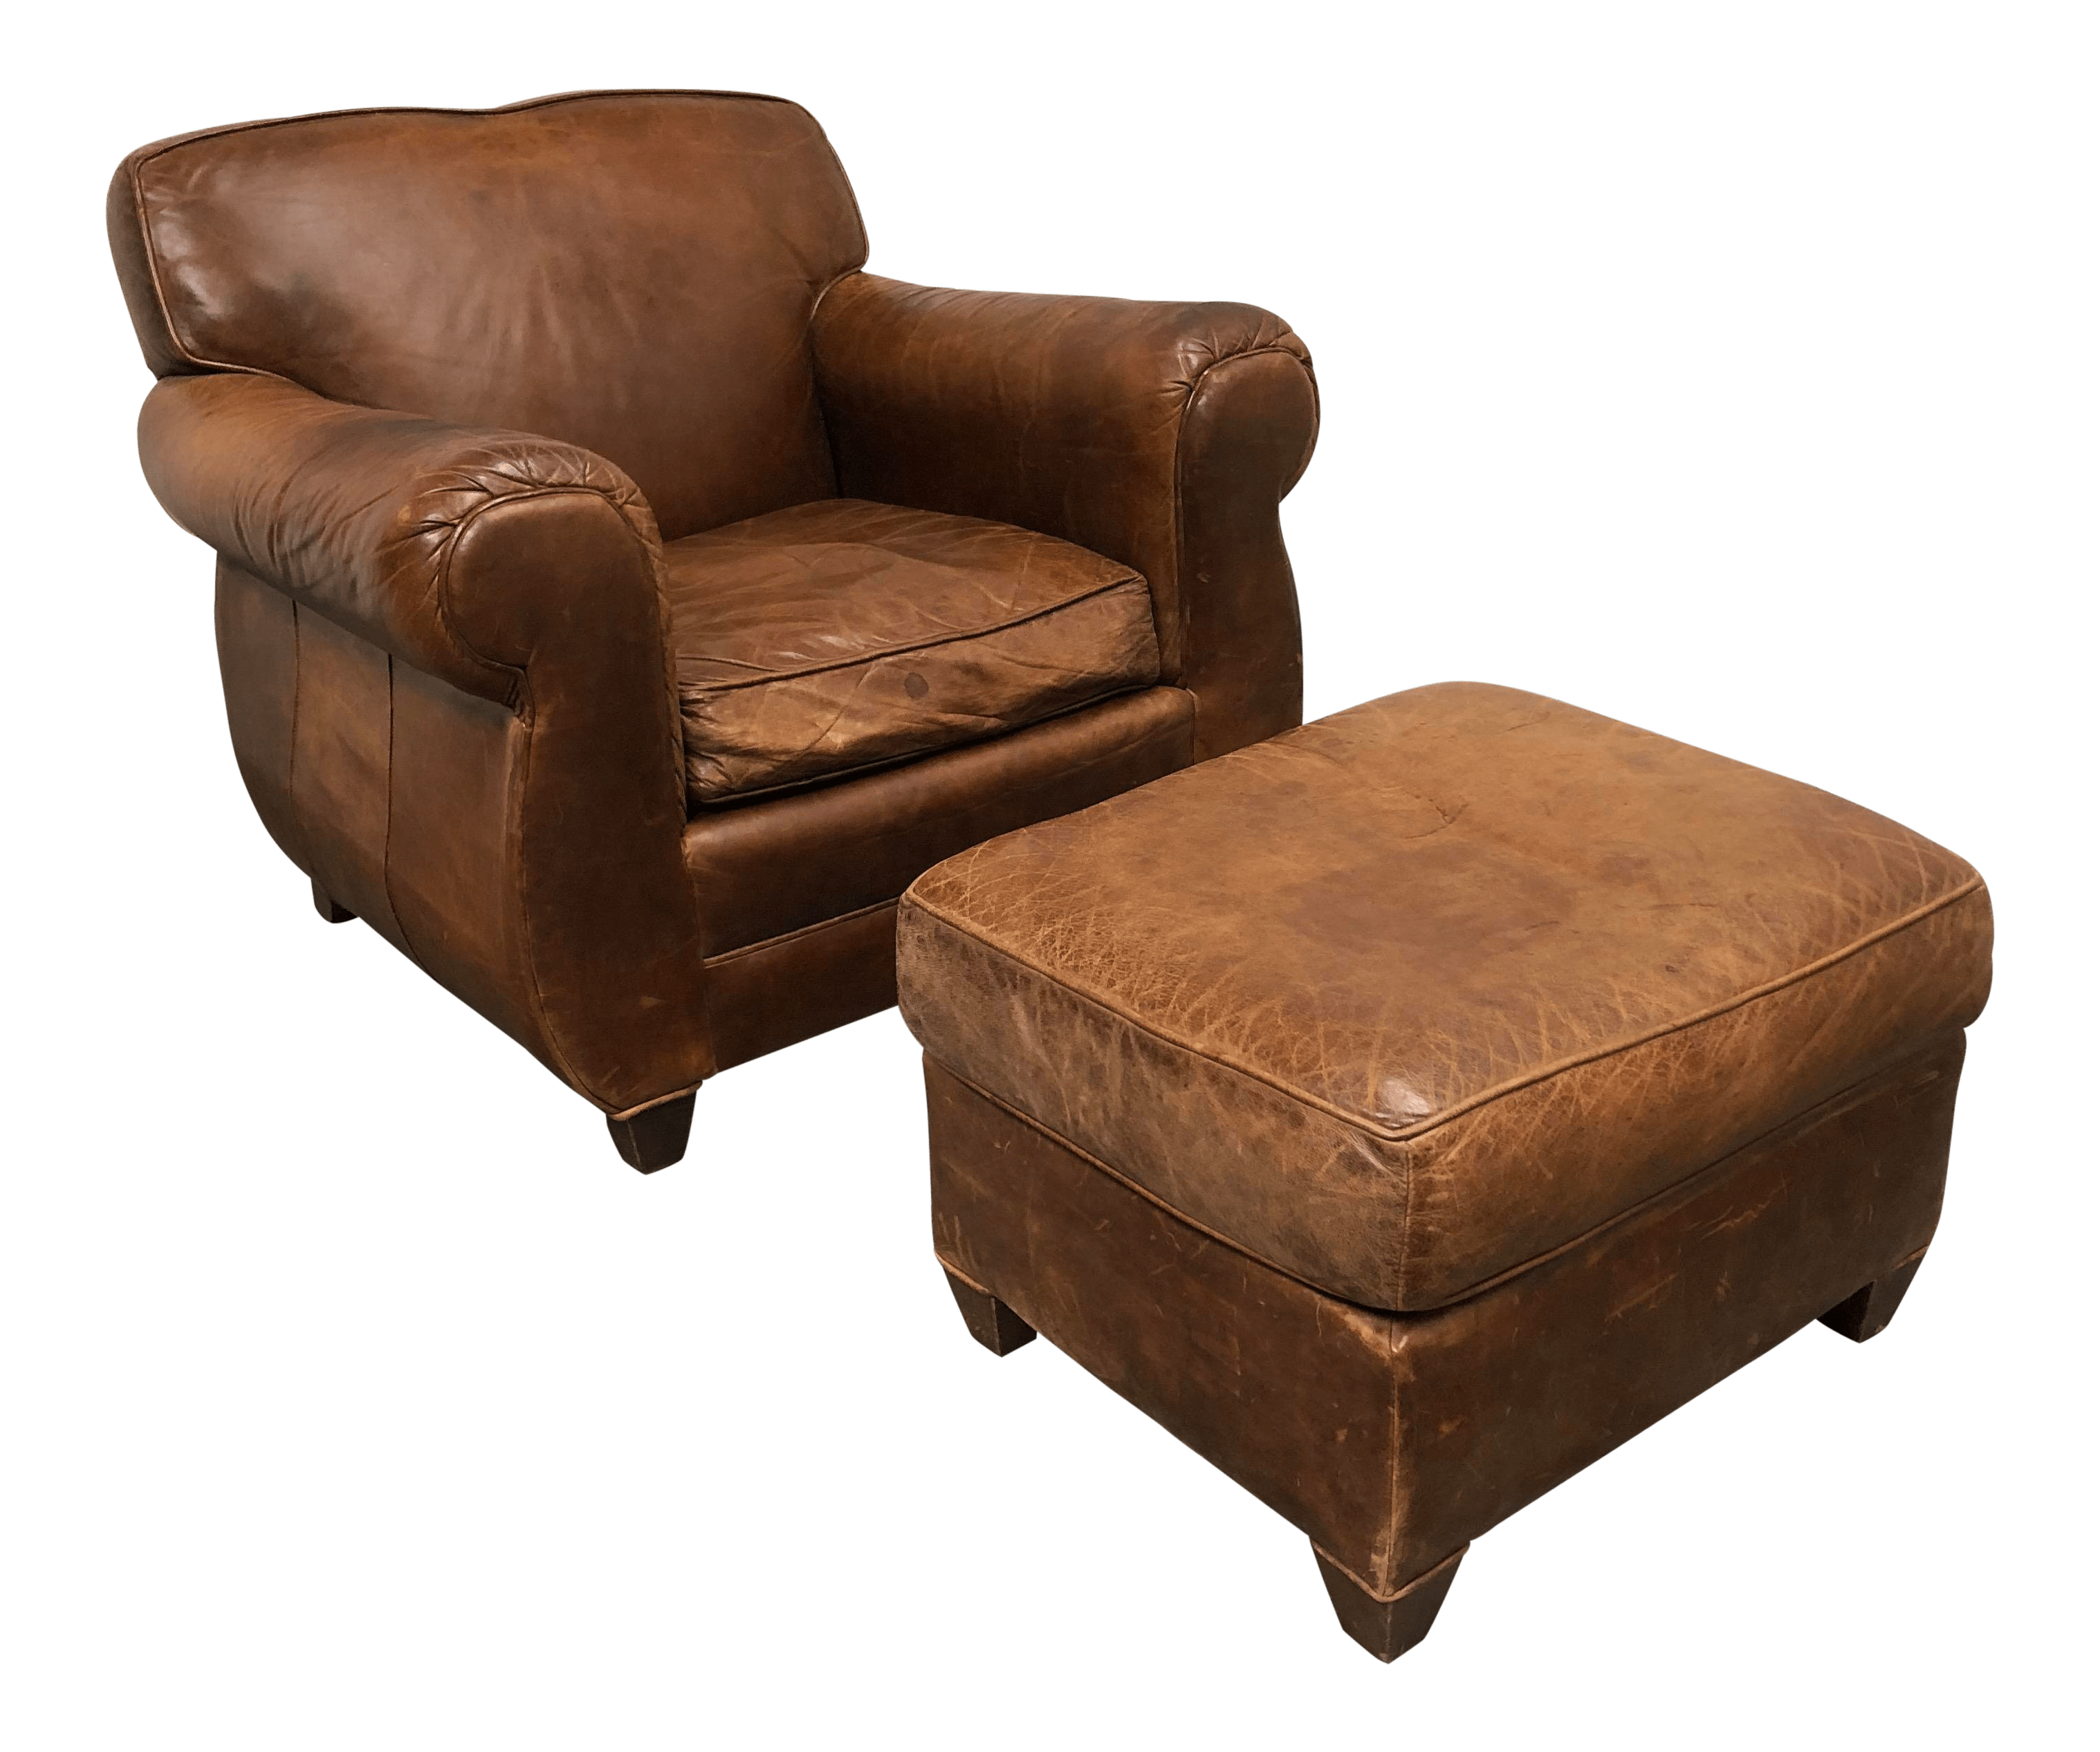 Leather Chair And Ottoman Mitchell Gold Restoration Hardware Leather Chair Ottoman